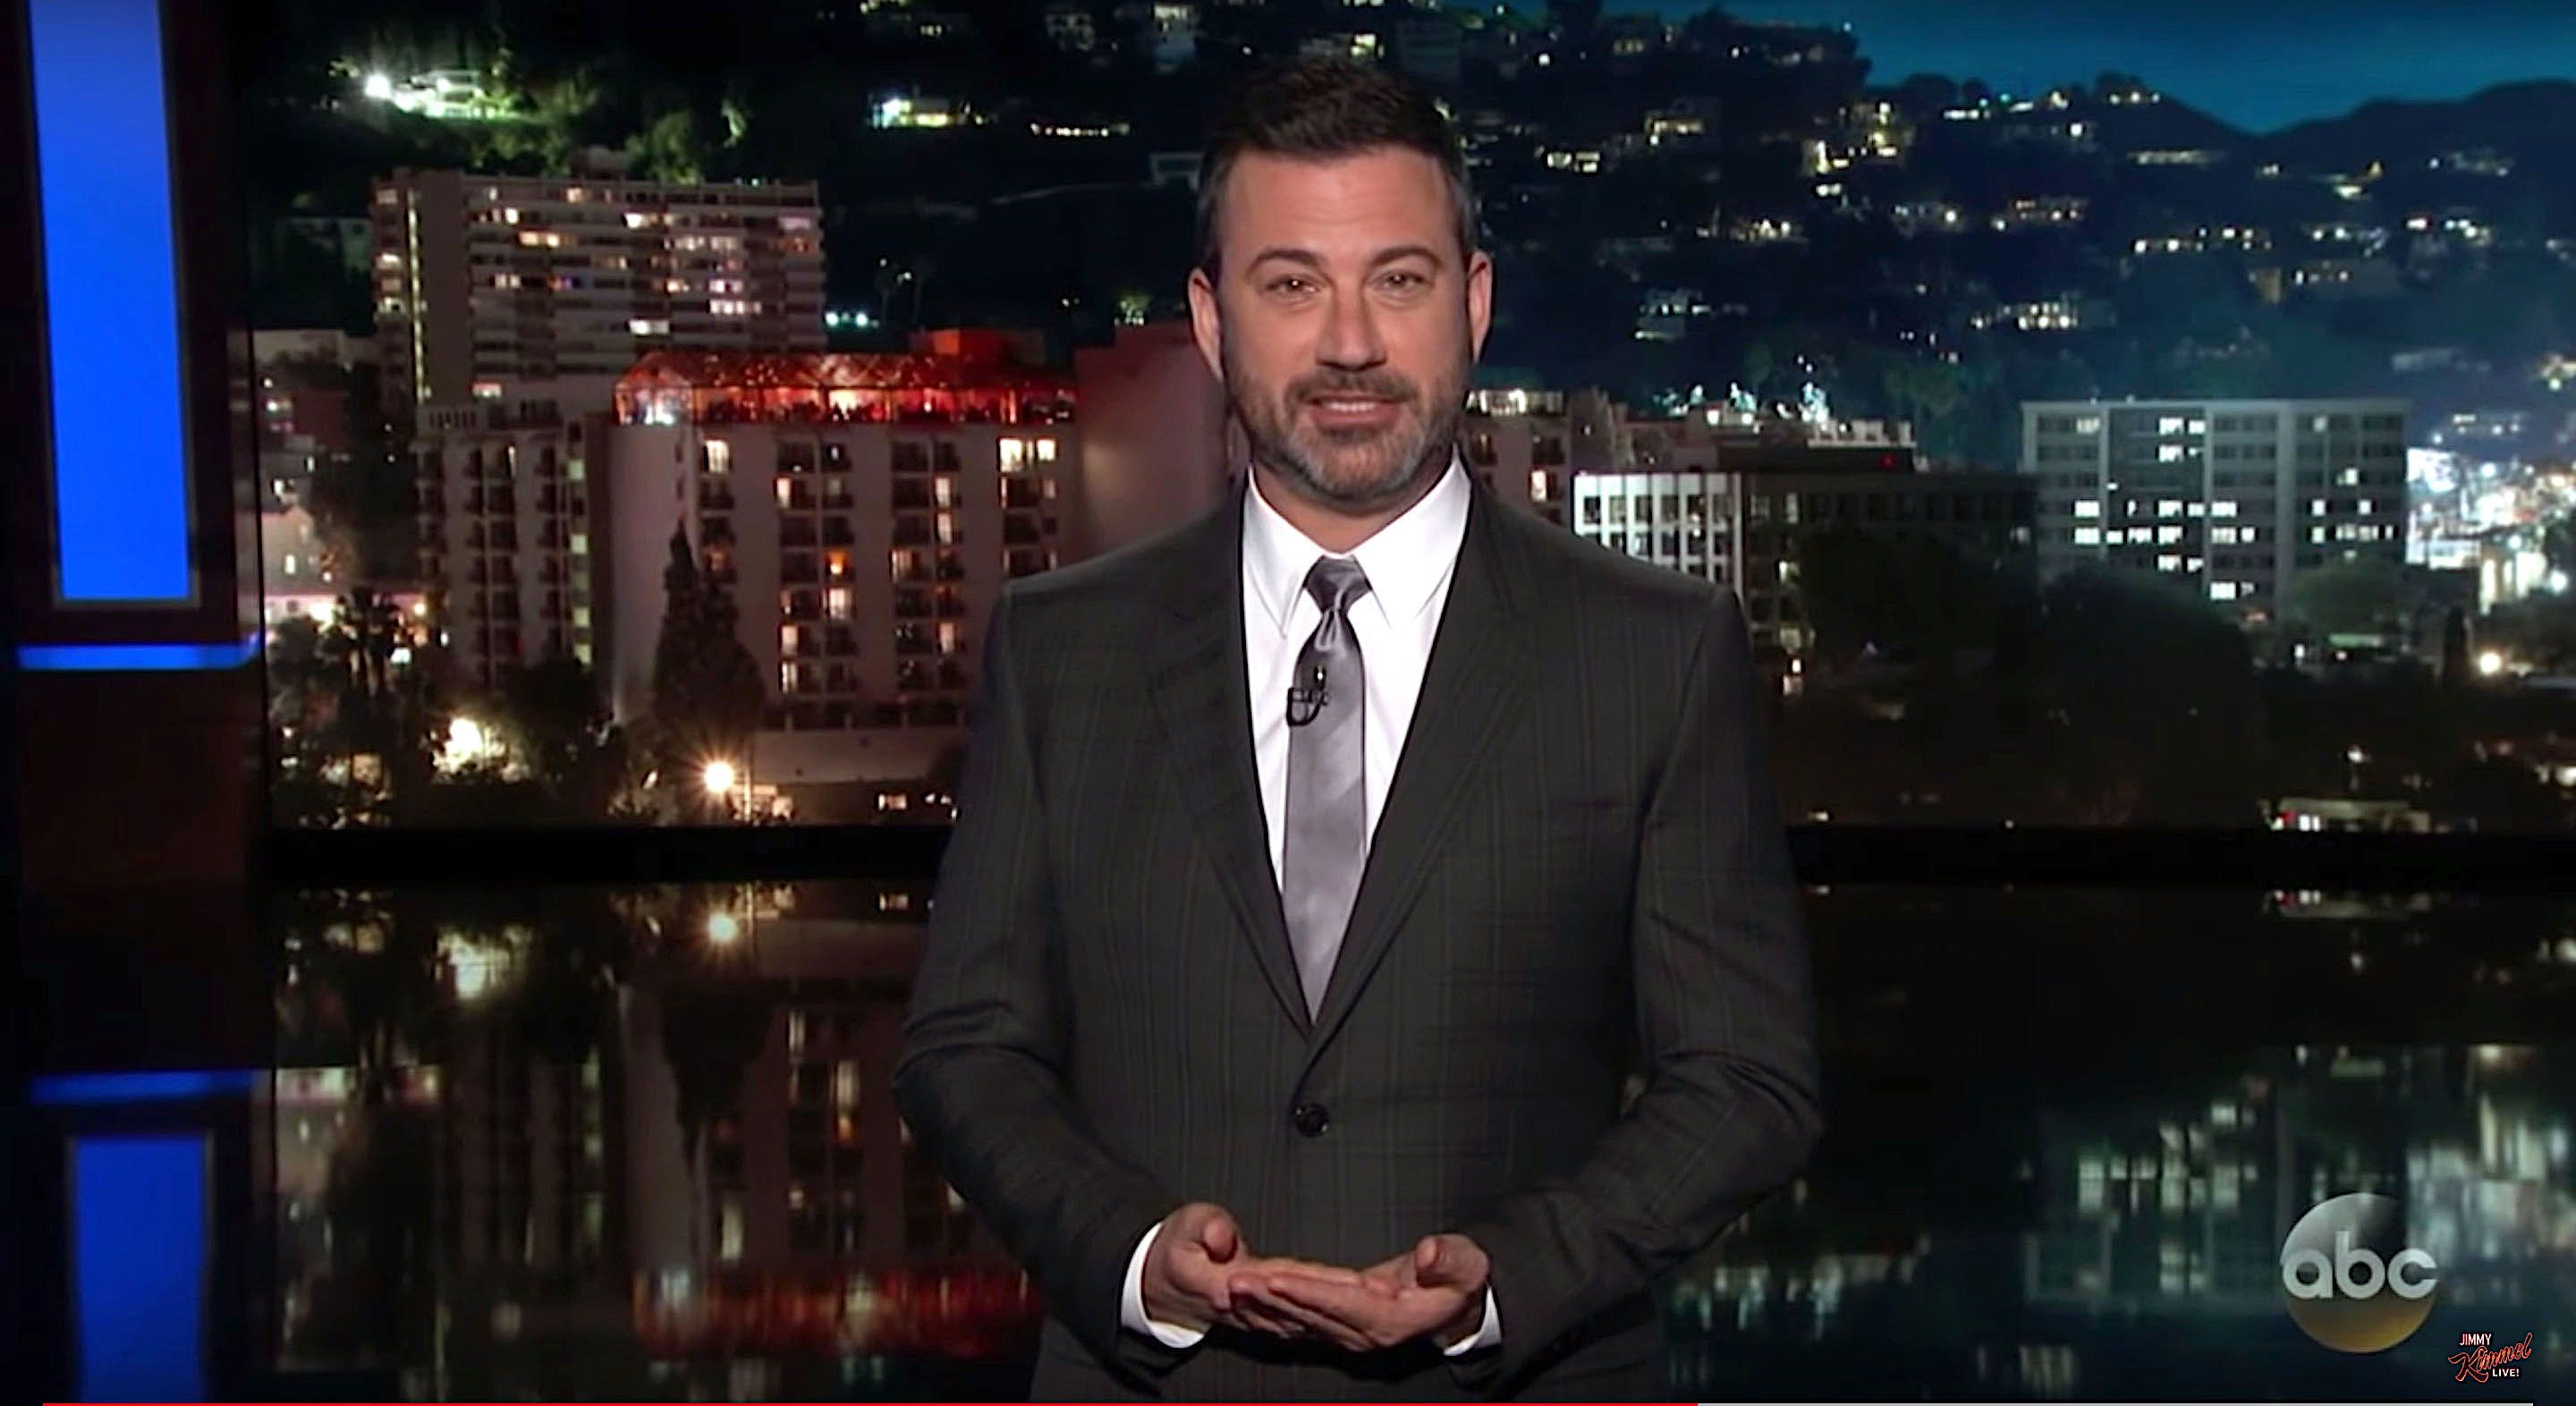 Jimmy Kimmel reflecting on the summit meeting between President Donald Trump and Russian President Vladimir Putin